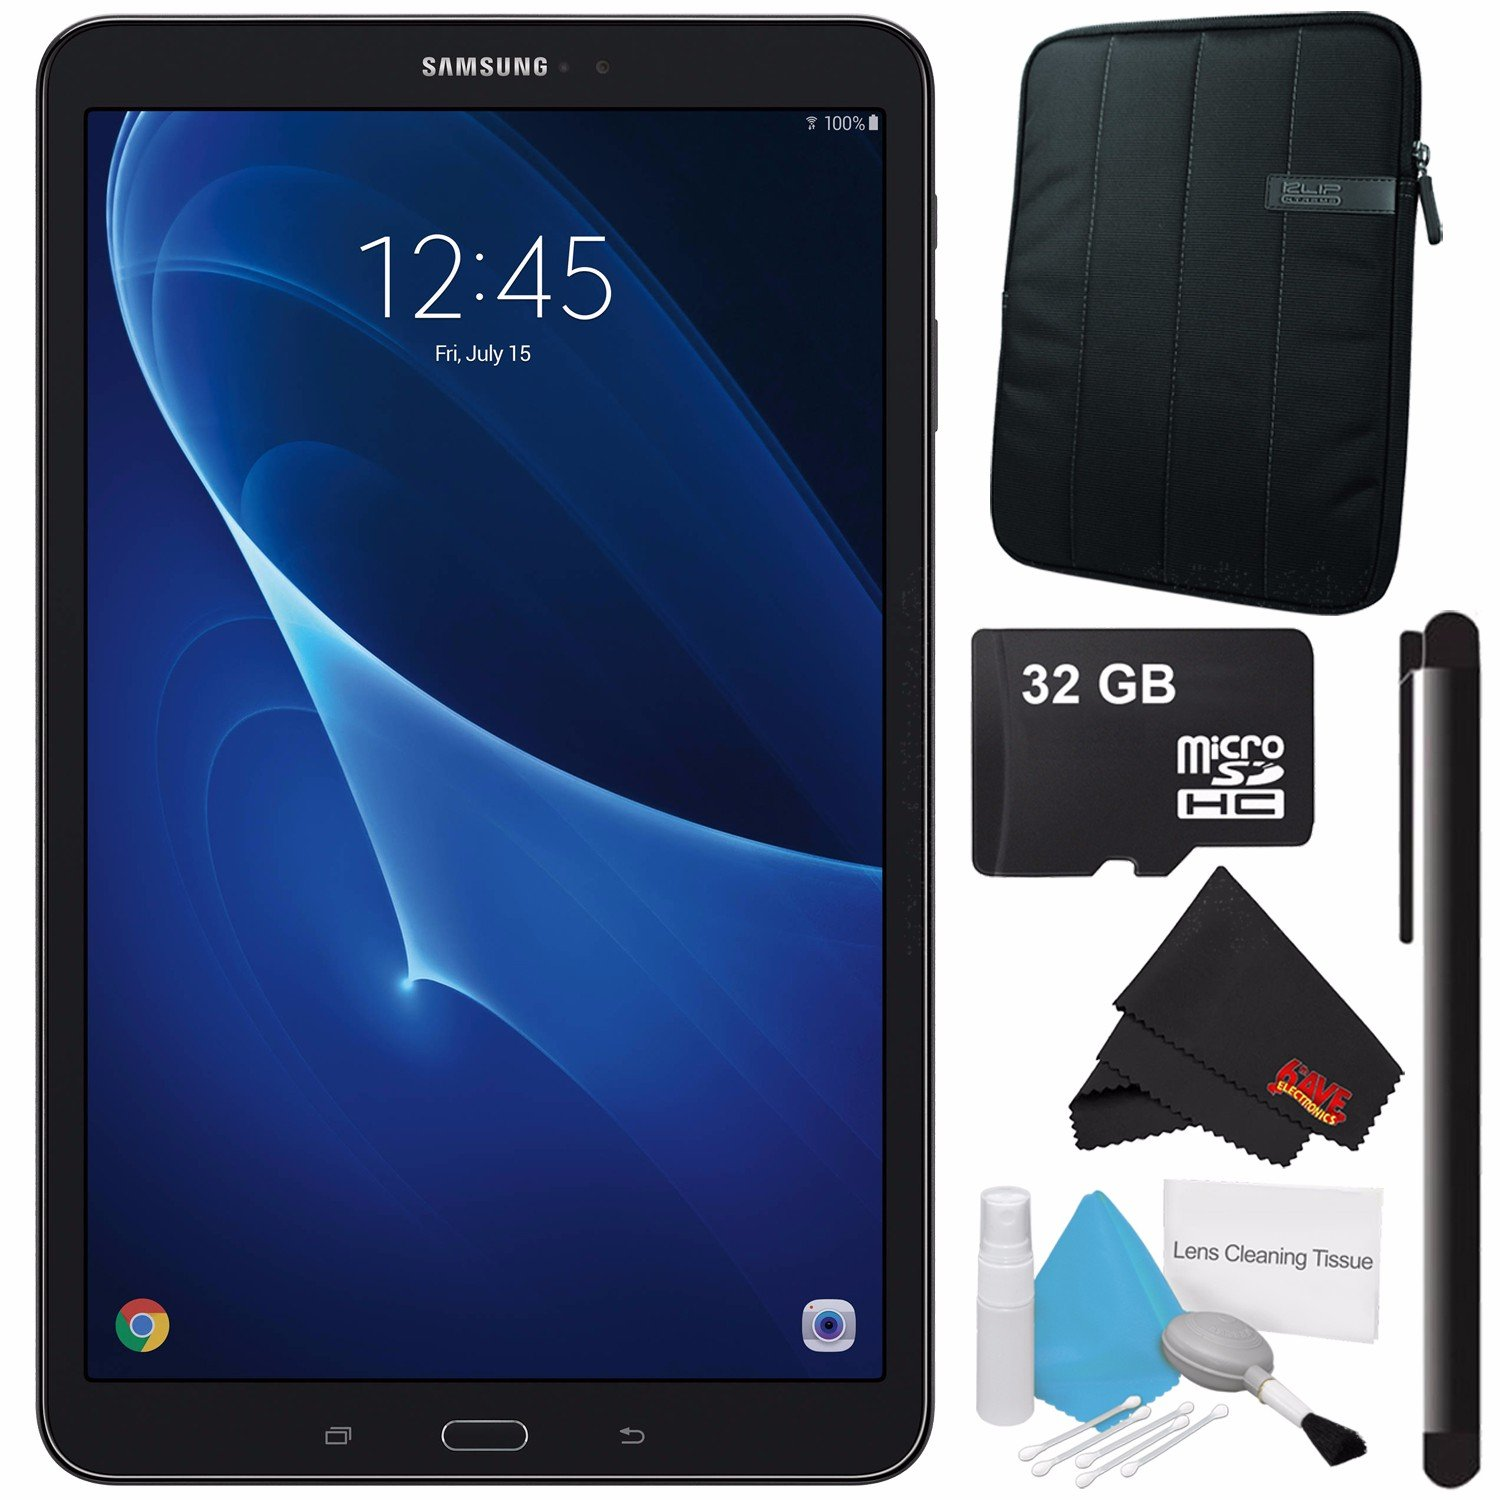 Samsung 10.1'' Galaxy Tab A T580 16GB Tablet (Wi-Fi Only, Black) SM-T580NZKAXAR + Universal Stylus for Tablets + Tablet Neoprene Sleeve 10.1'' Case (Black) + 32GB Class 10 Micro SD Memory Card Bundle by Samsung